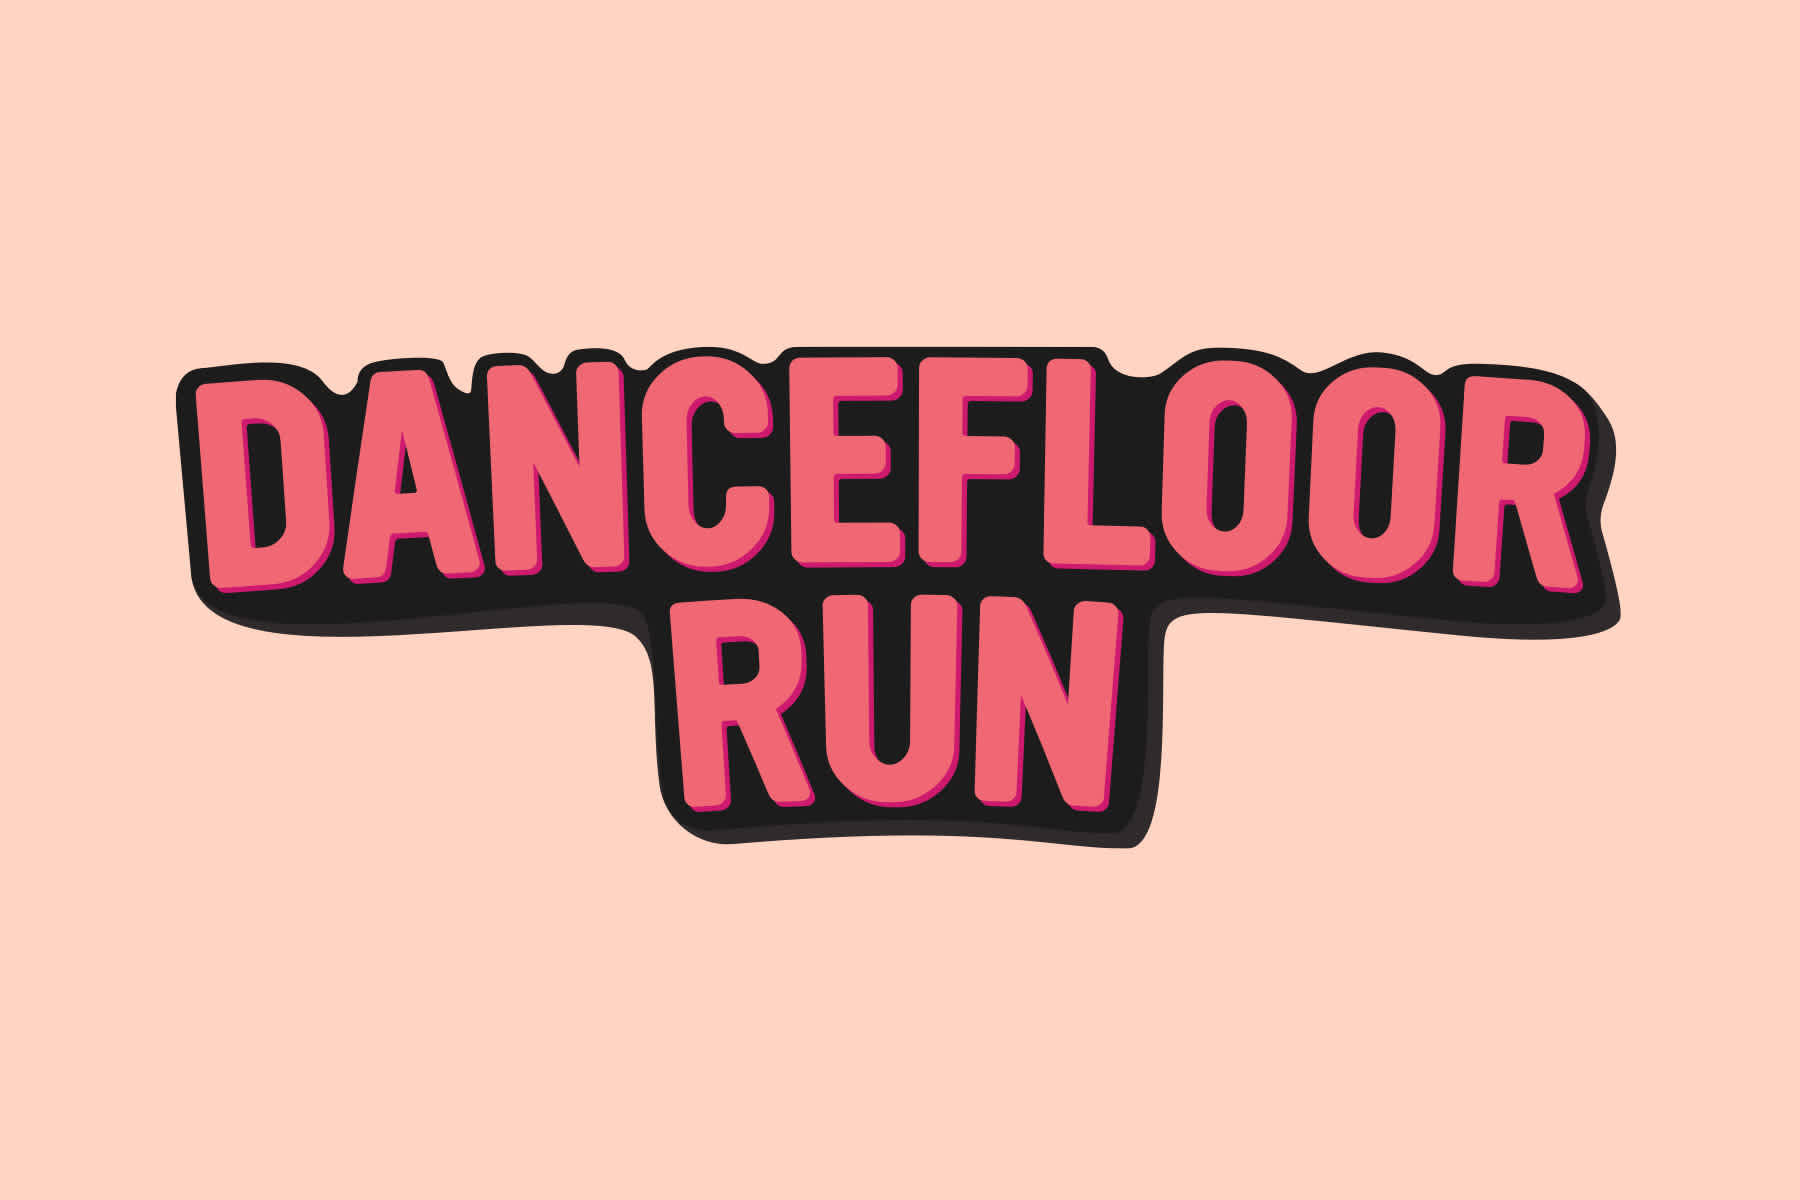 dancefloor-run-concept-1